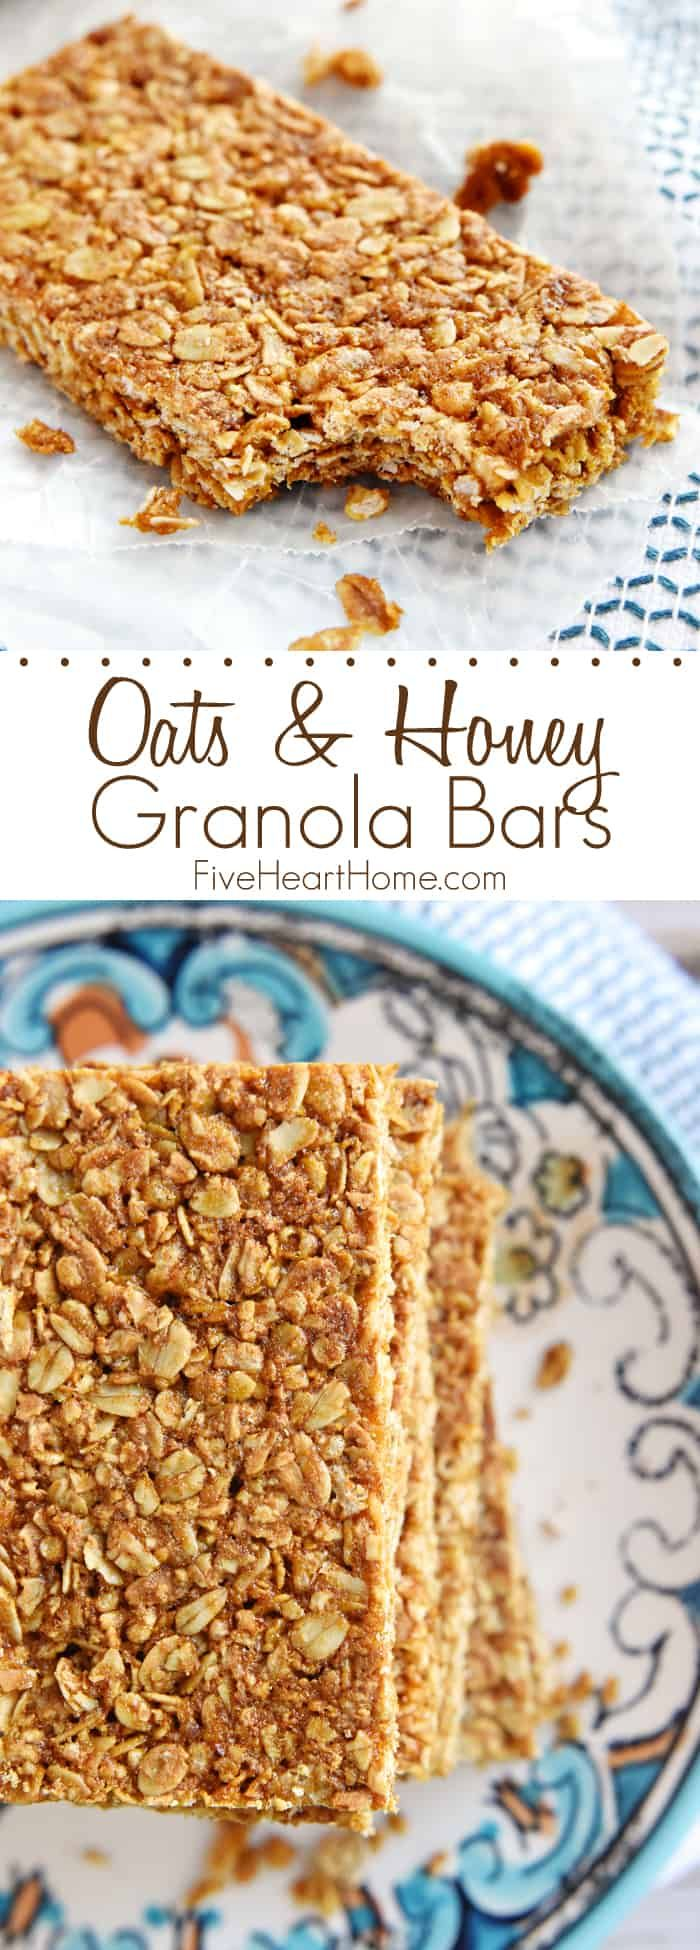 Oats & Honey Granola Bars by FIVEheartHOME